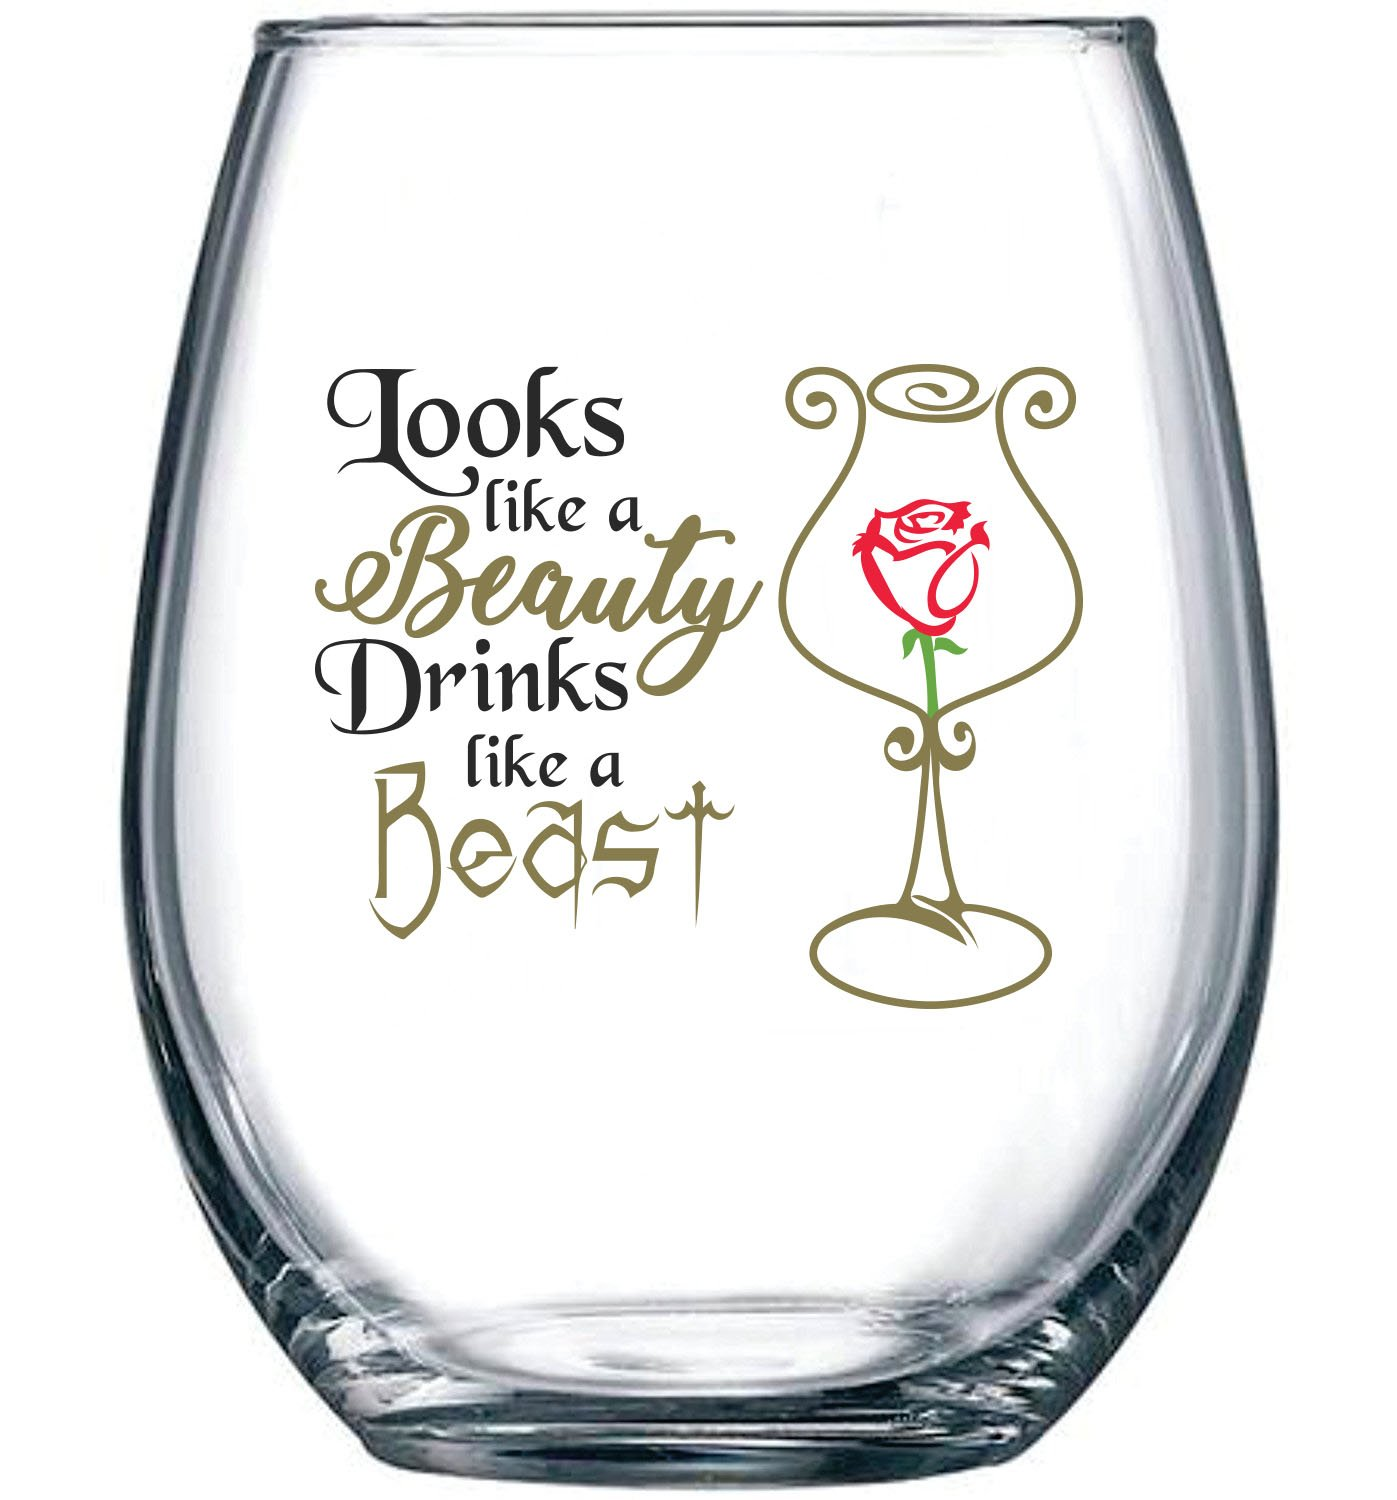 Looks Like a Beauty, Drinks Like a Beast | Funny Disney Princess Wine Glass | Perfect Girlfriend Birthday Gifts | Best Friend Gift For Women | Belle Rose Movie Themed | 15 oz Stemless Wine Glass by Gelid